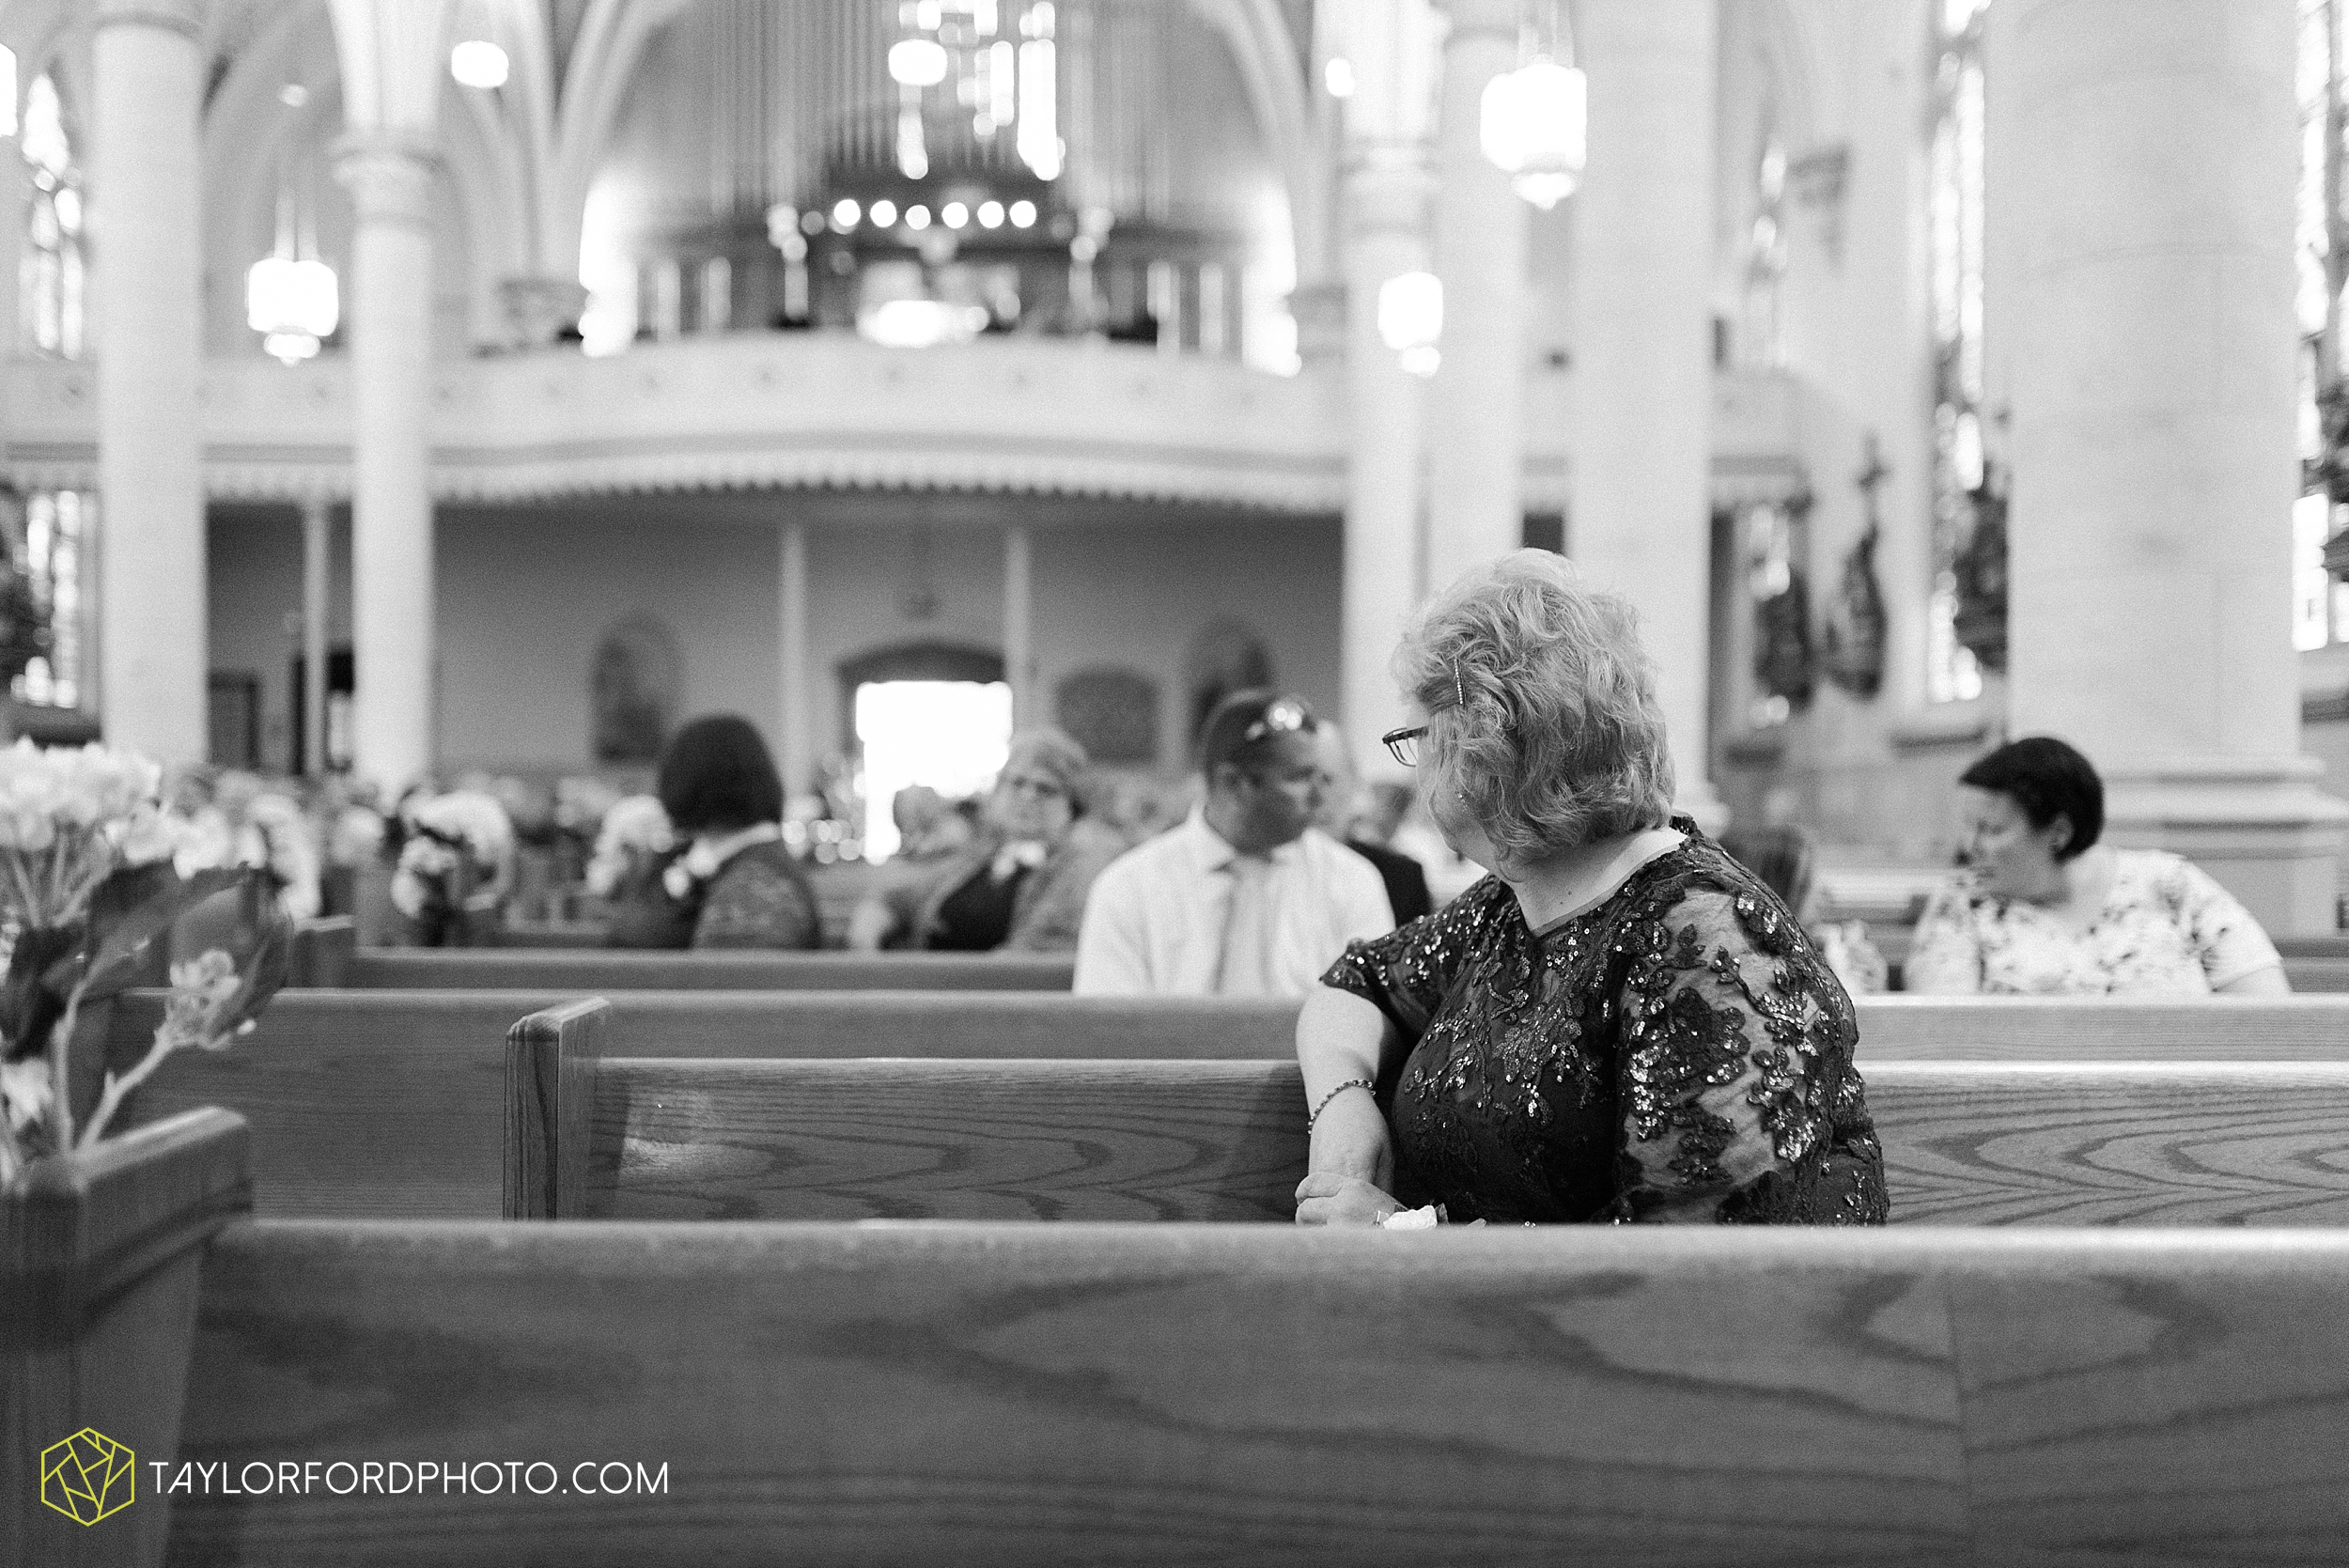 gayle-rayman-mike-steele-ottoville-ohio-wedding-immaculate-conception-parish-center-wedding-sycamore-lake-winery-wannamachers-photographer-taylor-ford-photography_0389.jpg